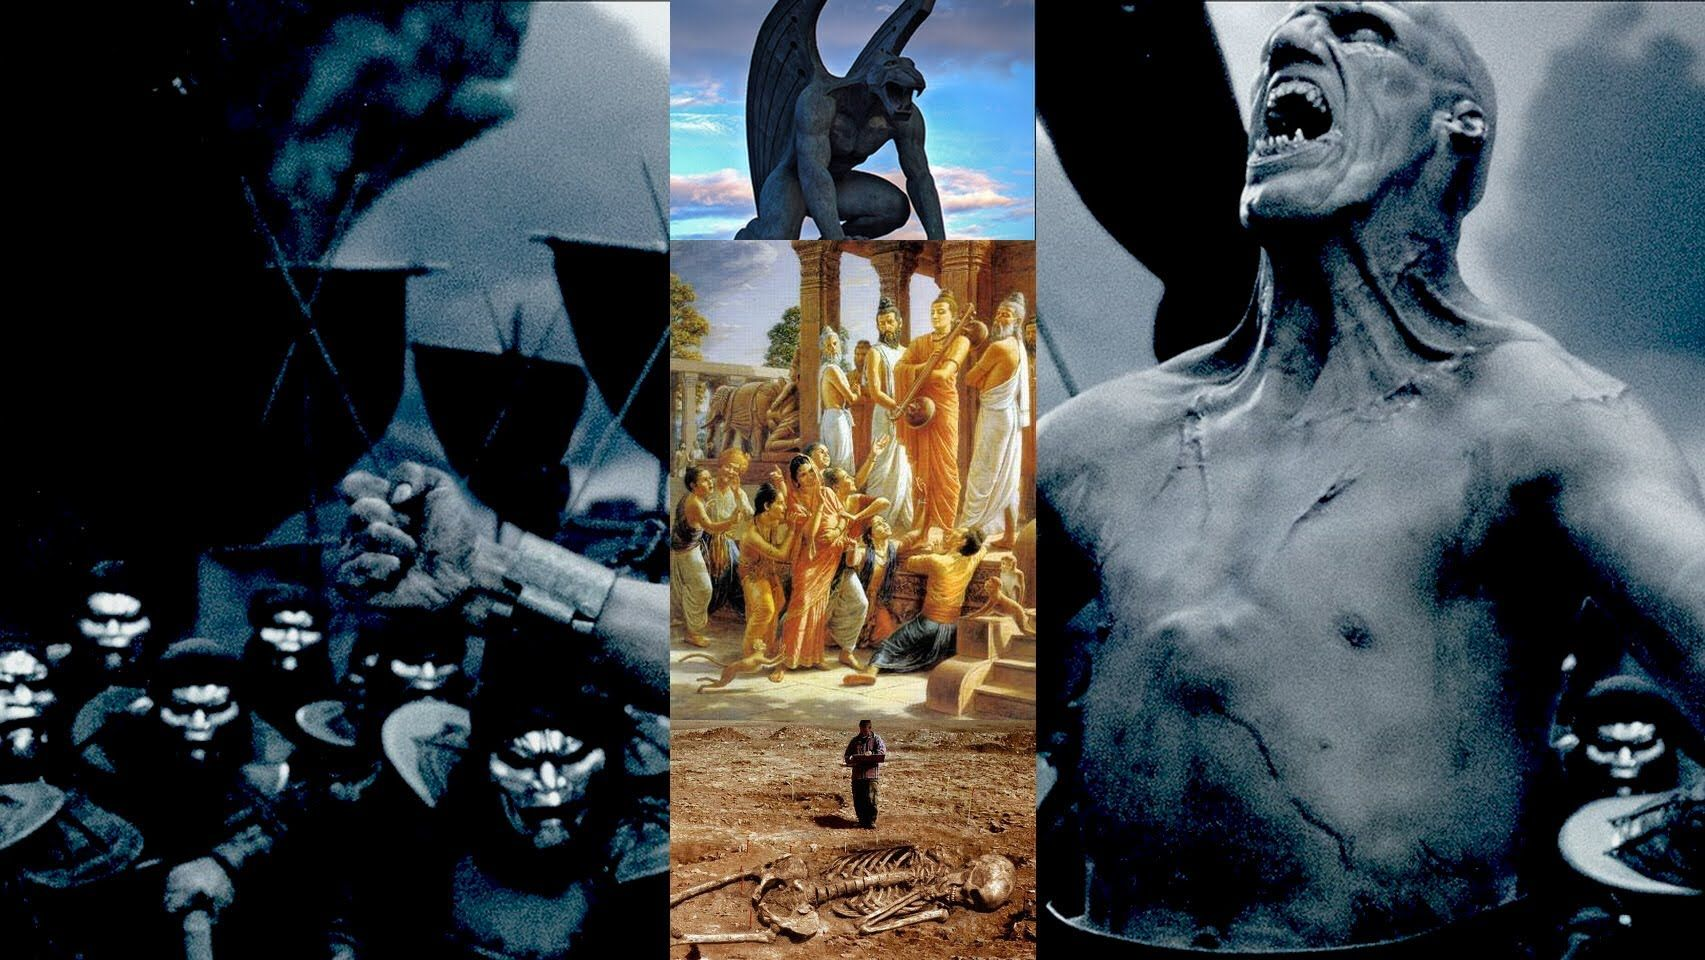 Rise of the Nephilim: Giants from the Ancient World in the Days of Noah    Bible prophecy, Nephilim, Bible